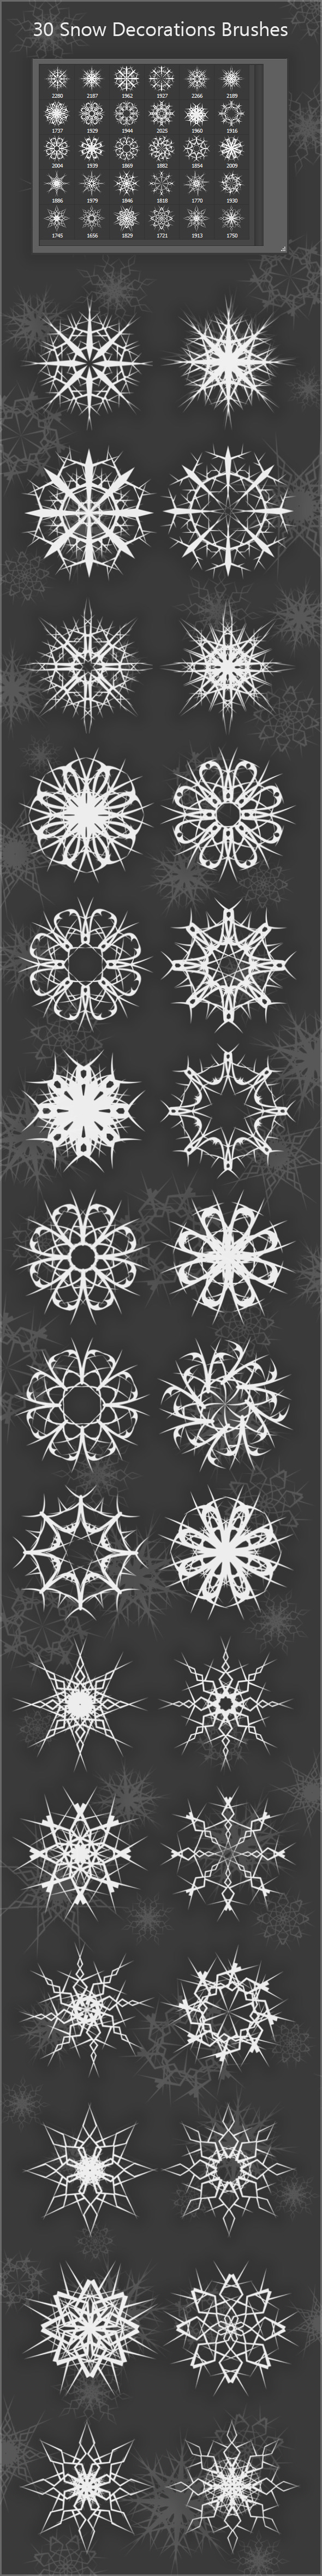 30 Snow Decorations Brushes (2000px) - Brushes Photoshop